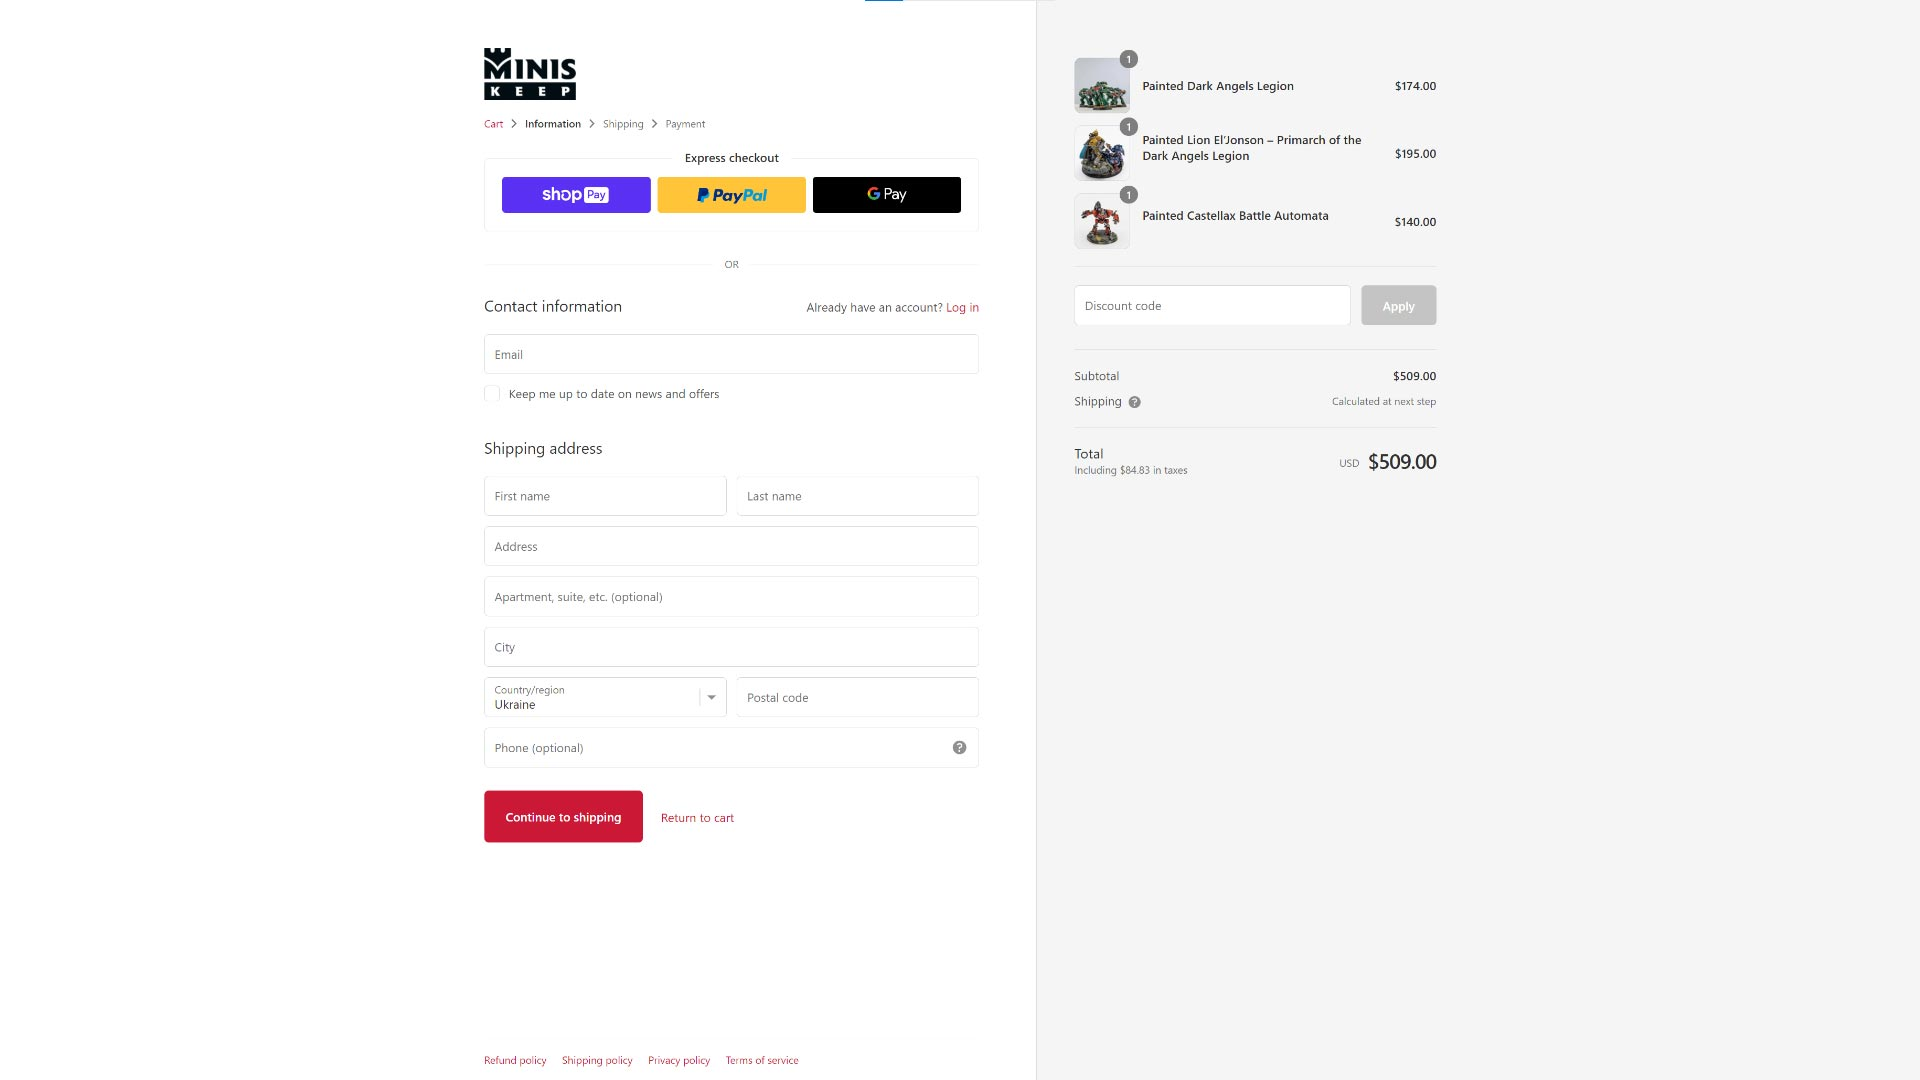 MinisKeep-Checkout-Page